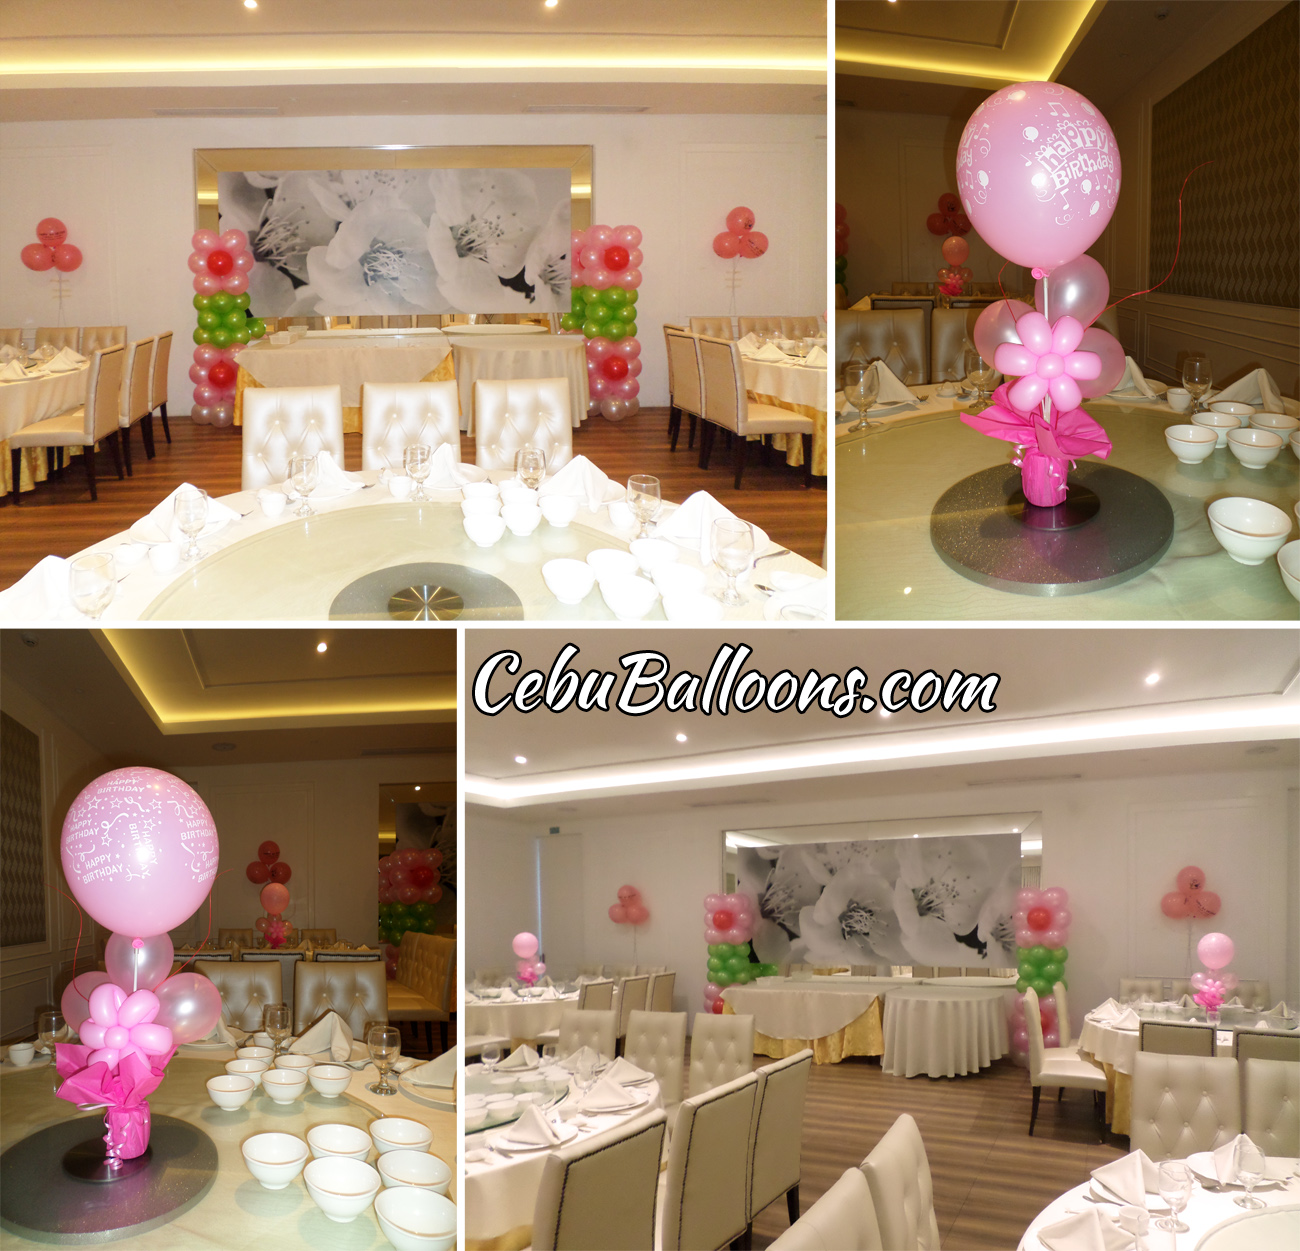 Grand convention center of cebu balloons and party